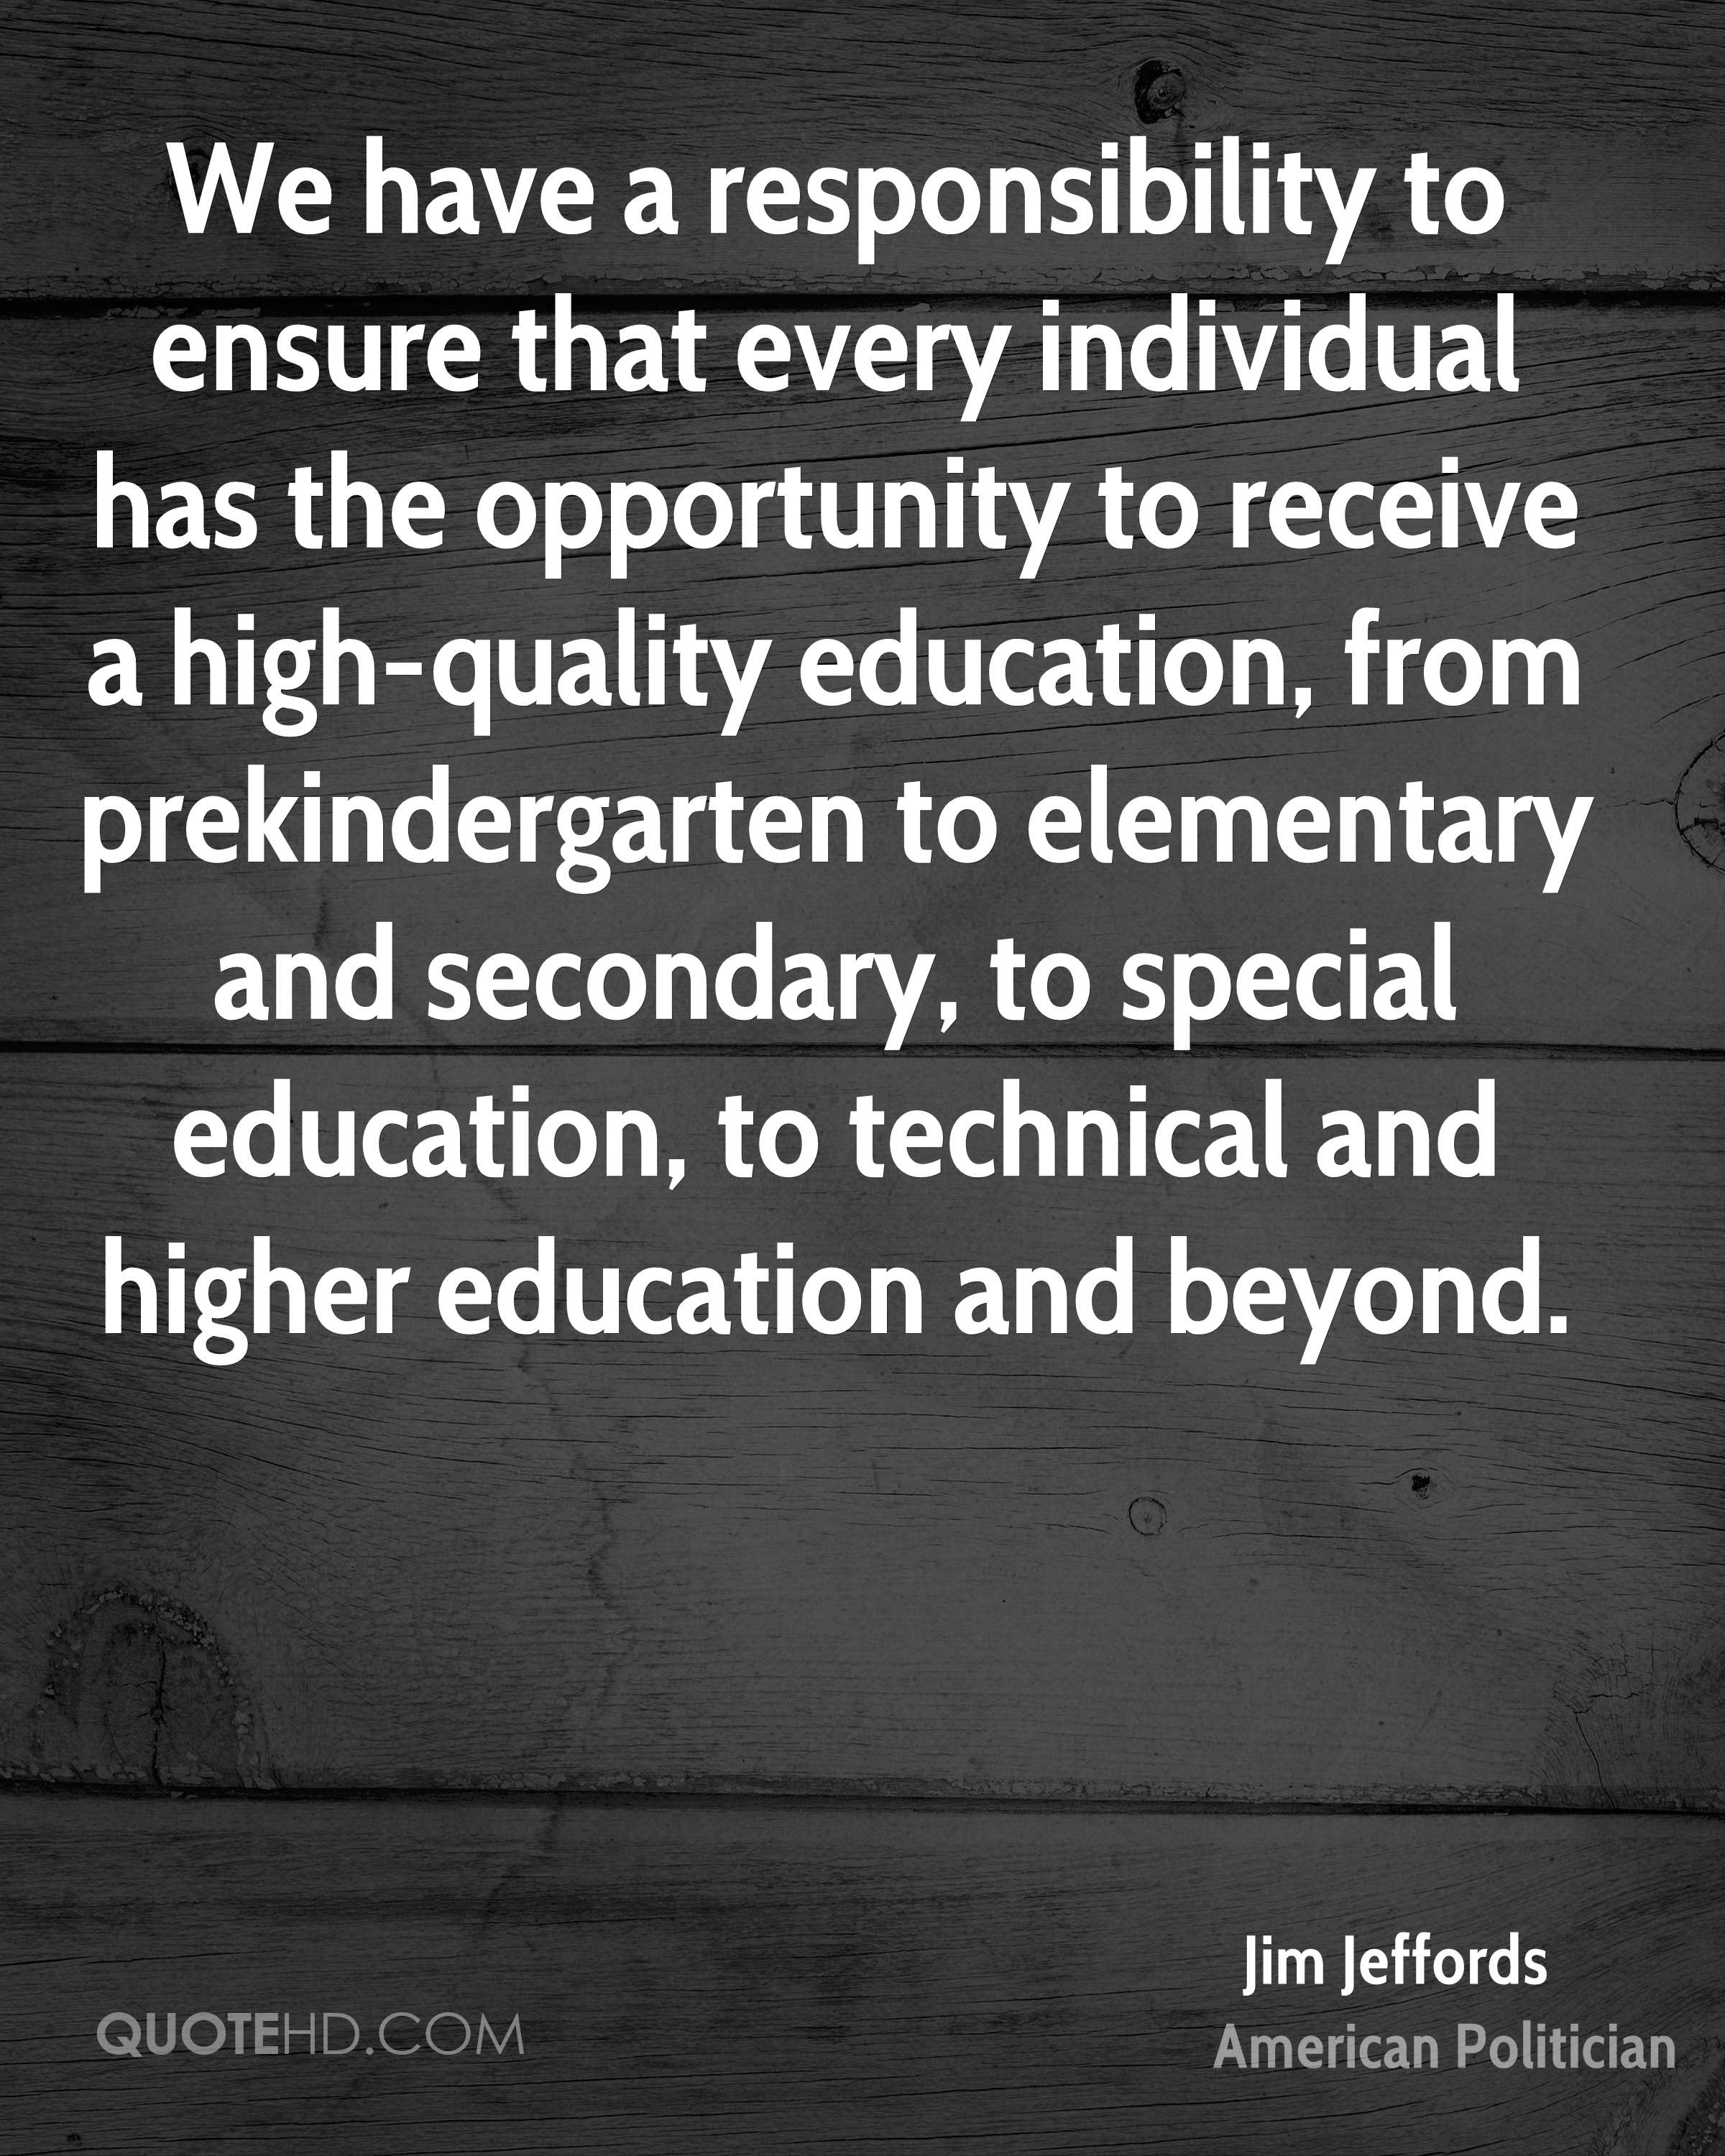 We have a responsibility to ensure that every individual has the opportunity to receive a high-quality education, from prekindergarten to elementary and secondary, to special education, to technical and higher education and beyond.